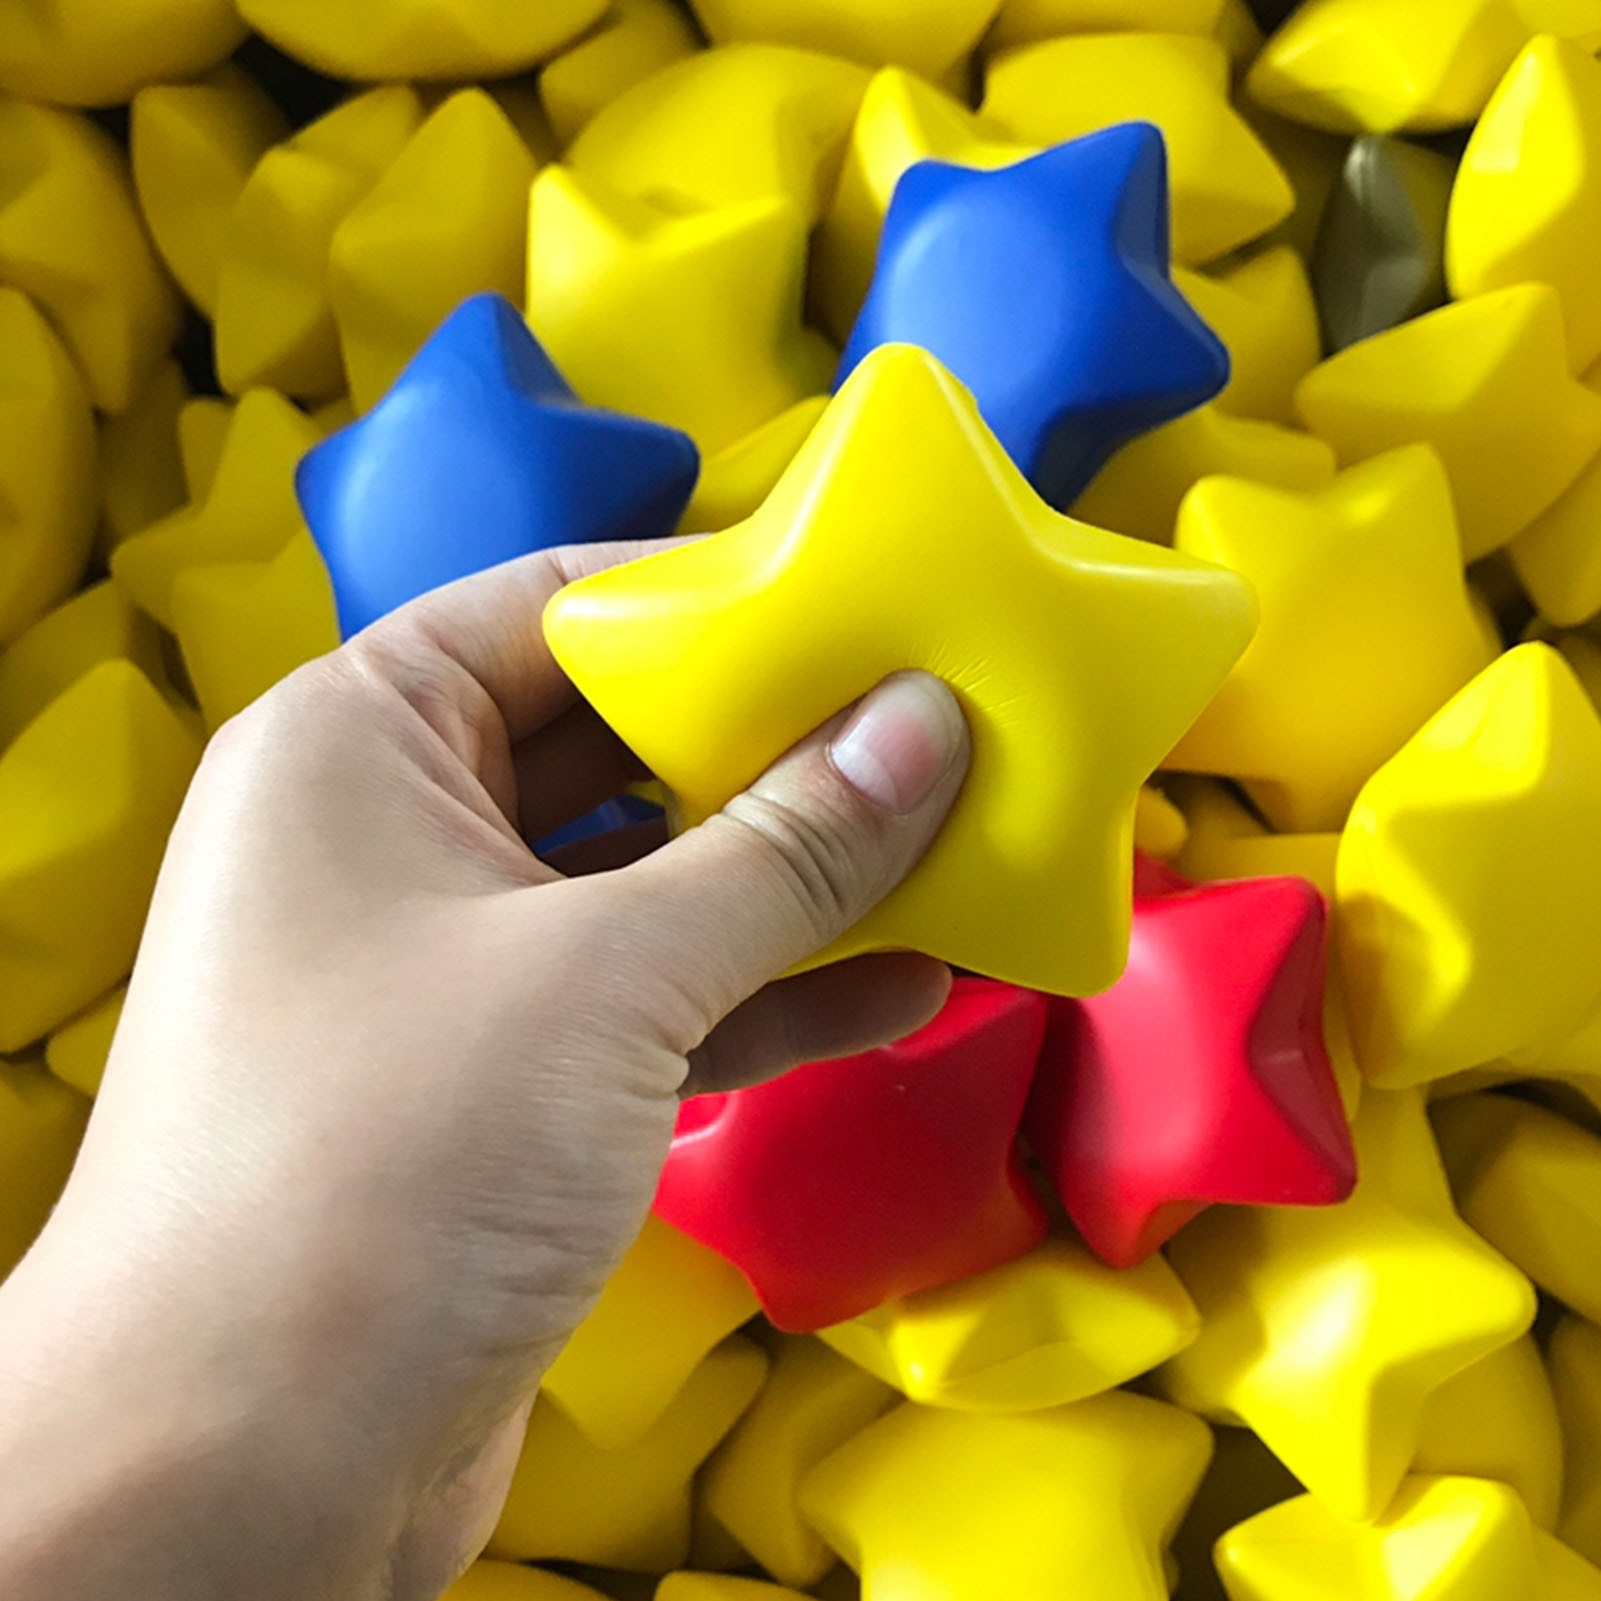 12PCS Five-pointed Star Stress Relief Balls Mini Soft Foam Stress Toys Gift For Kids Decompression Toy Set enlarge